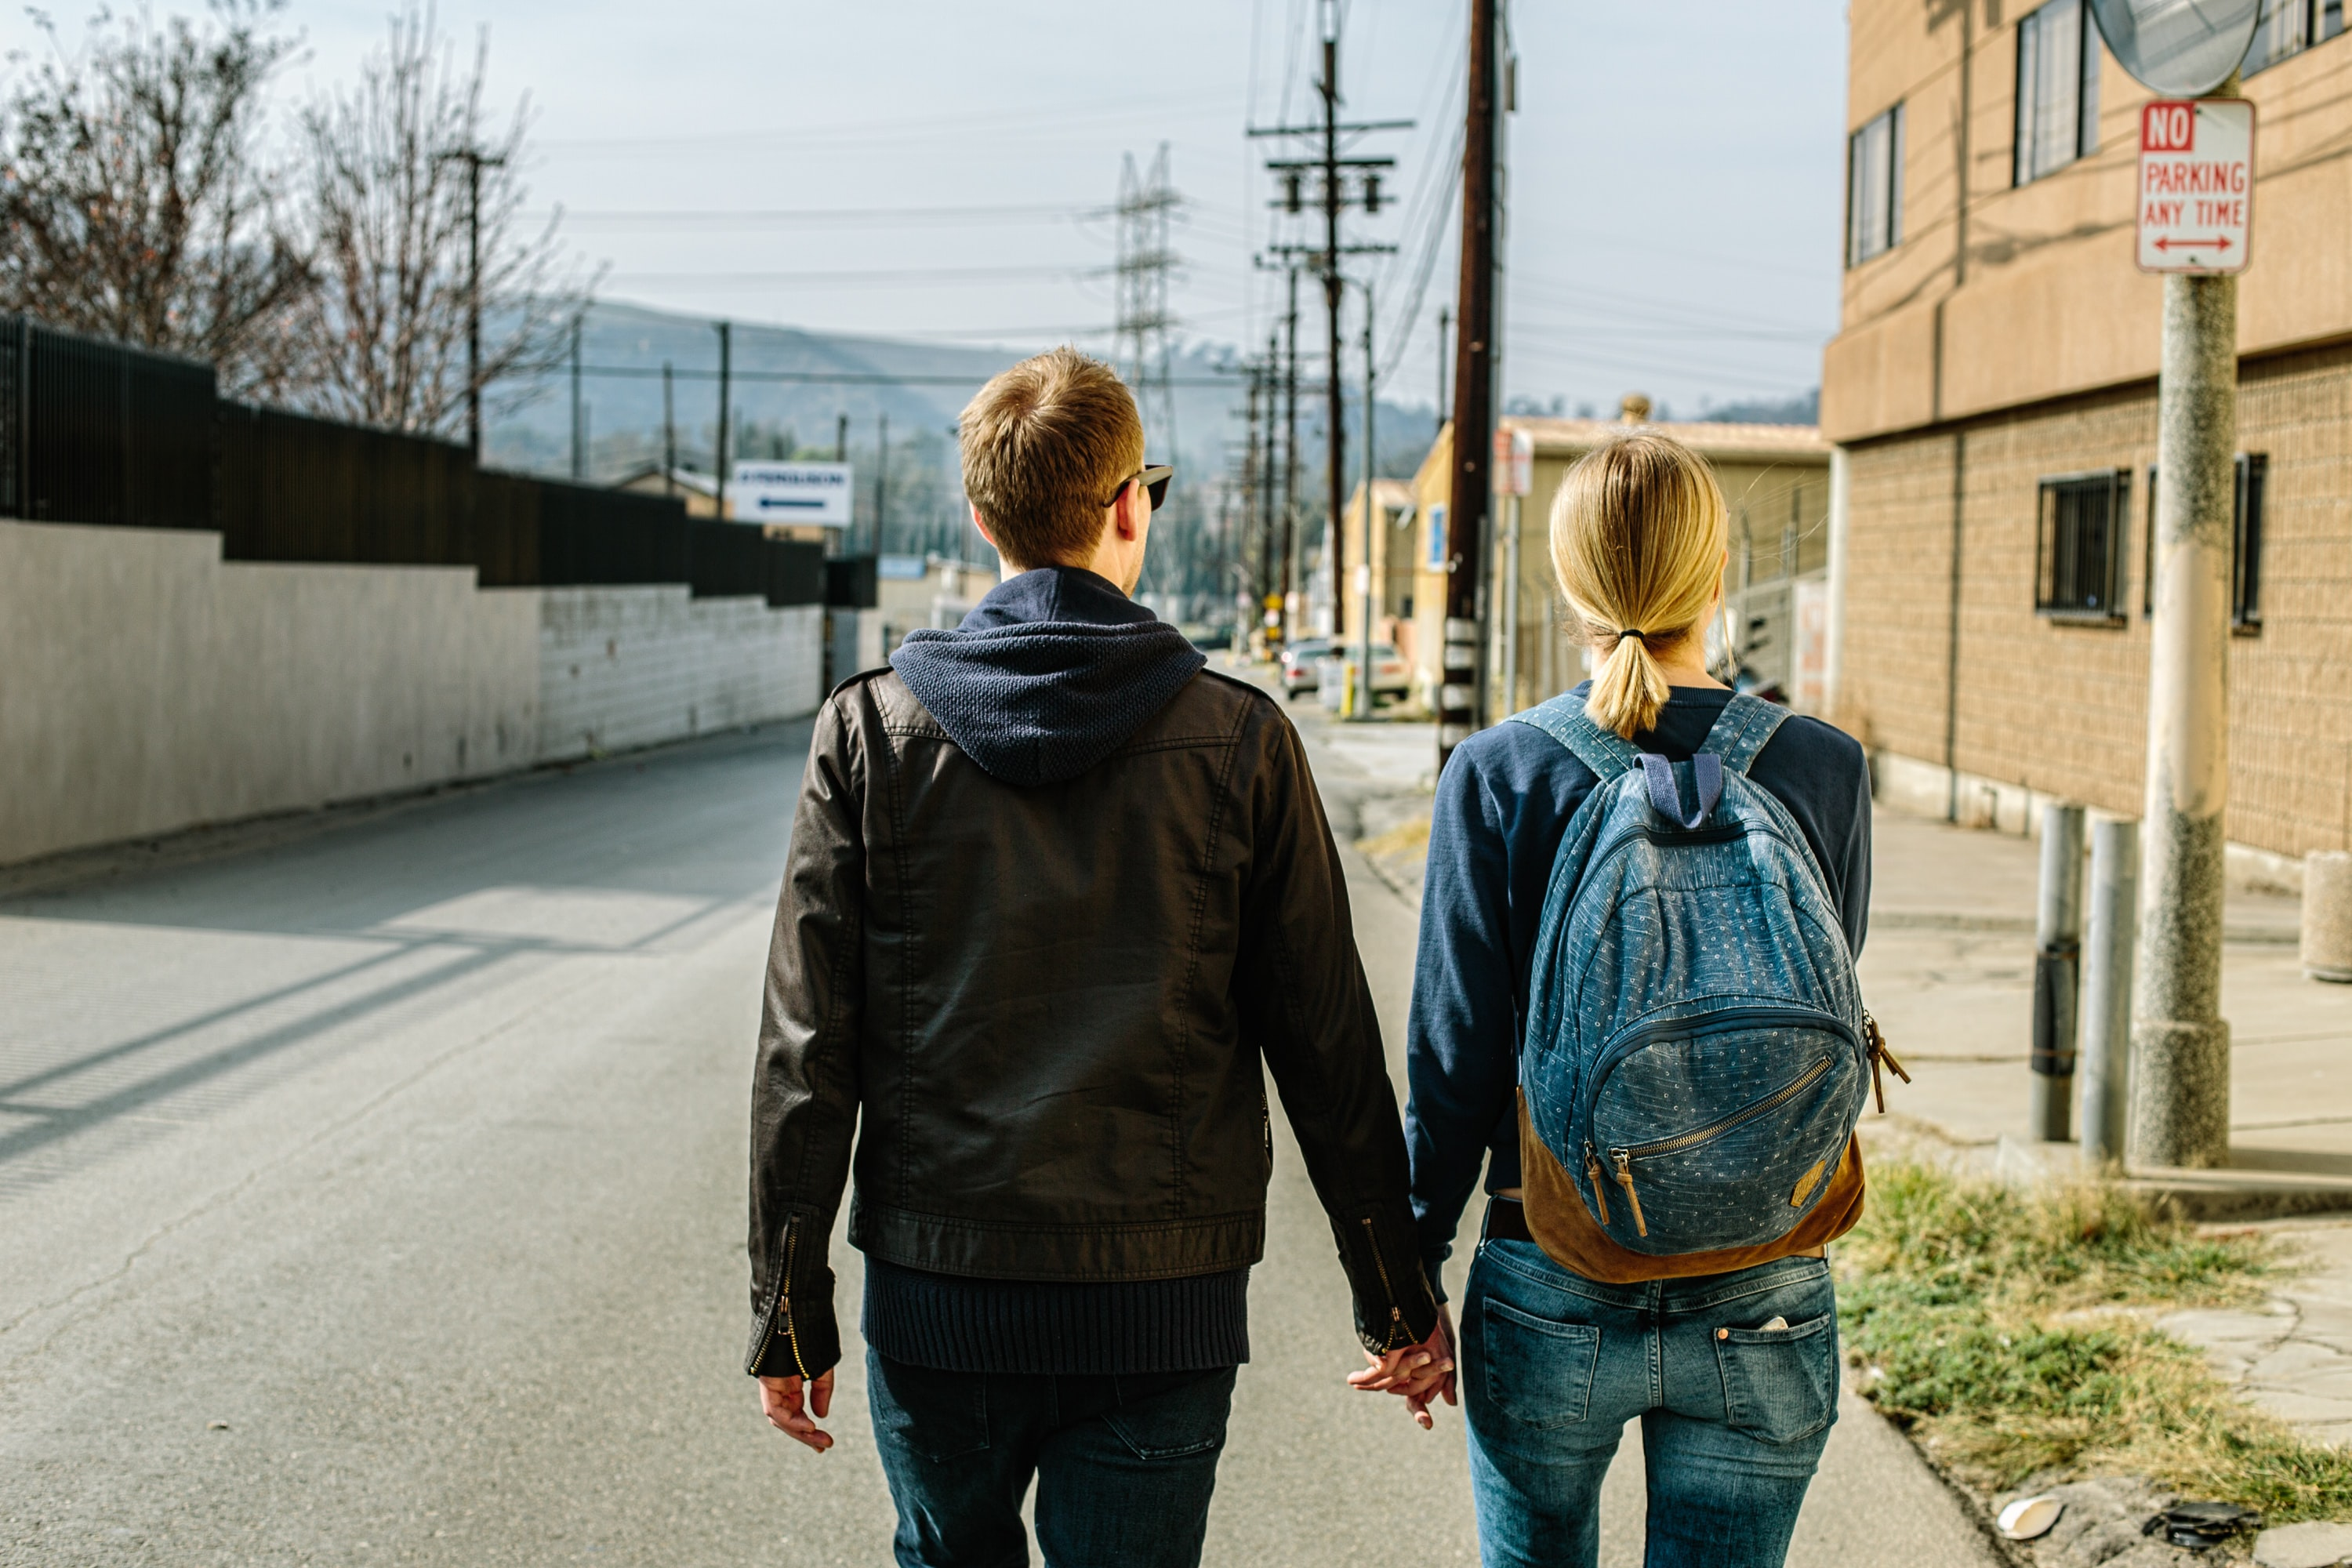 A man and woman wearing a backpack walk along a city street holding hands